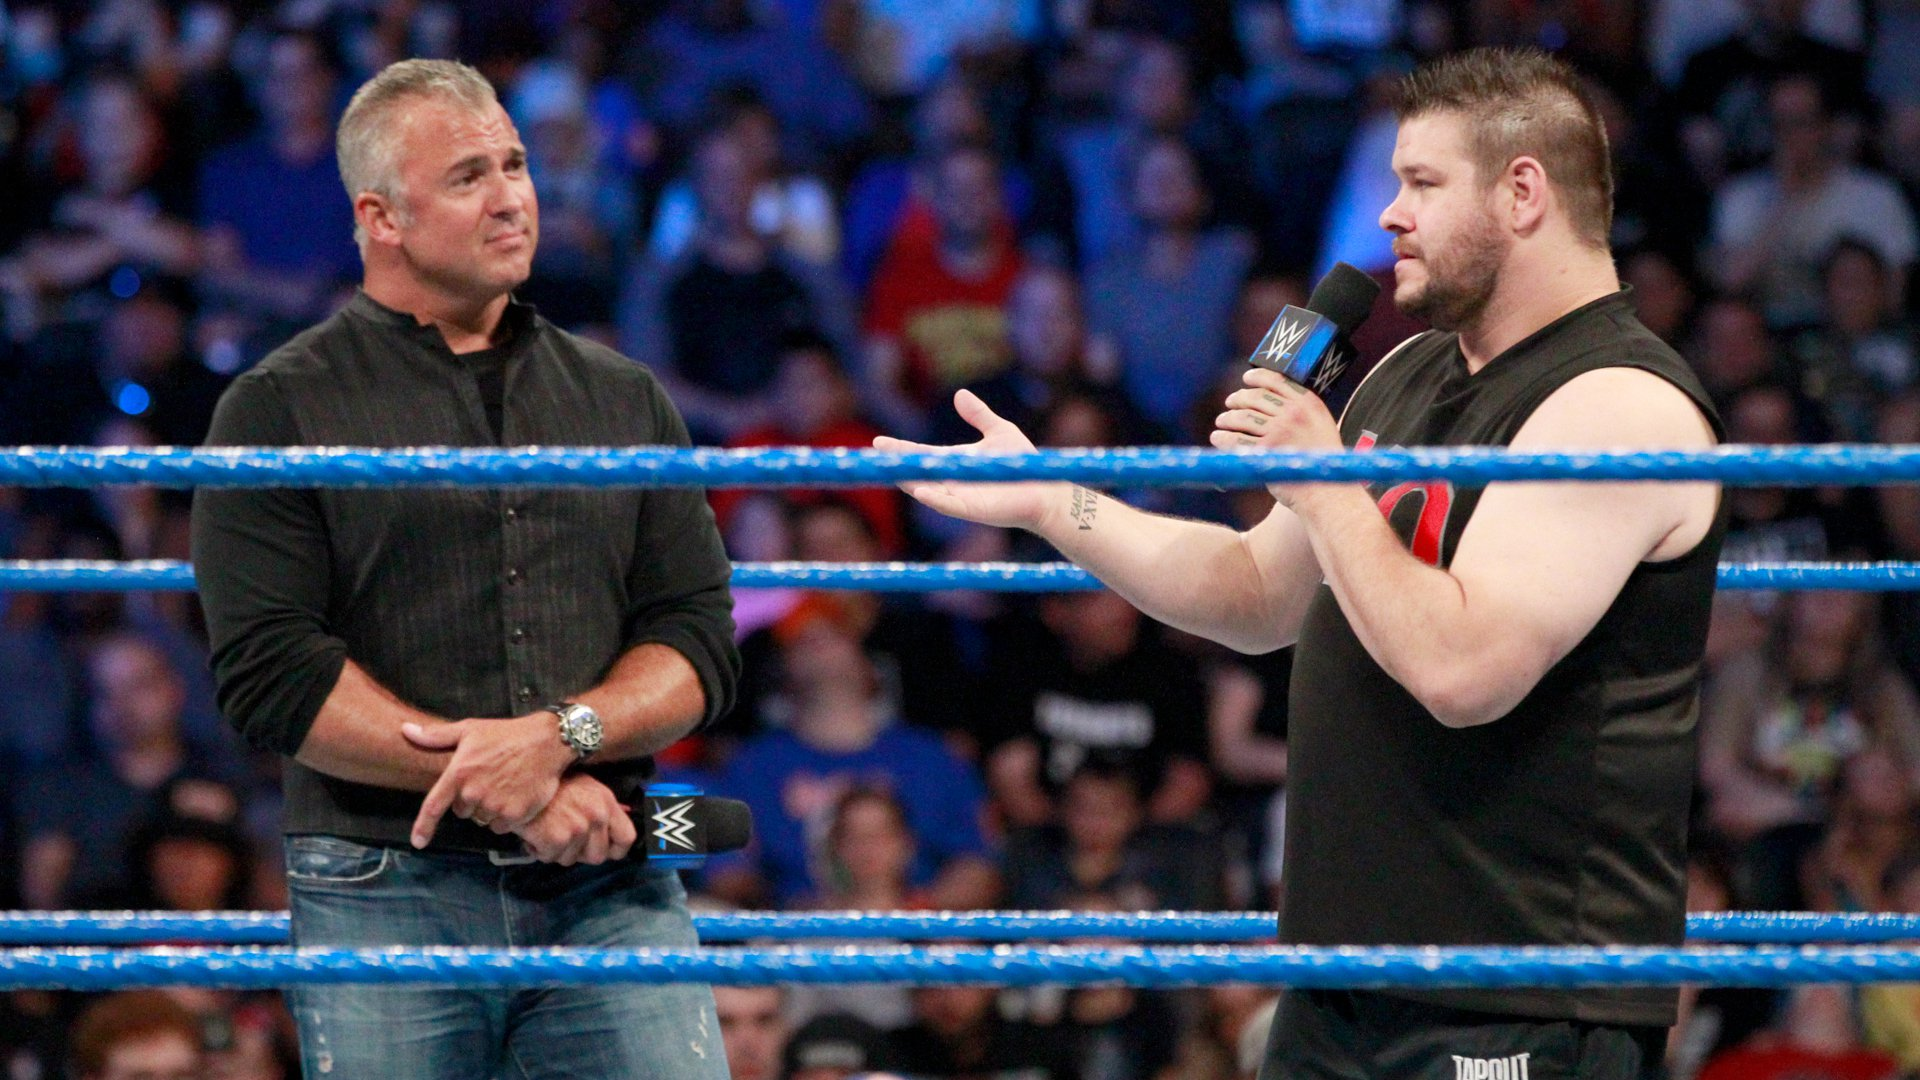 KO plays a clip from WWE Network that shows Shane as a referee refusing to make a three-count...